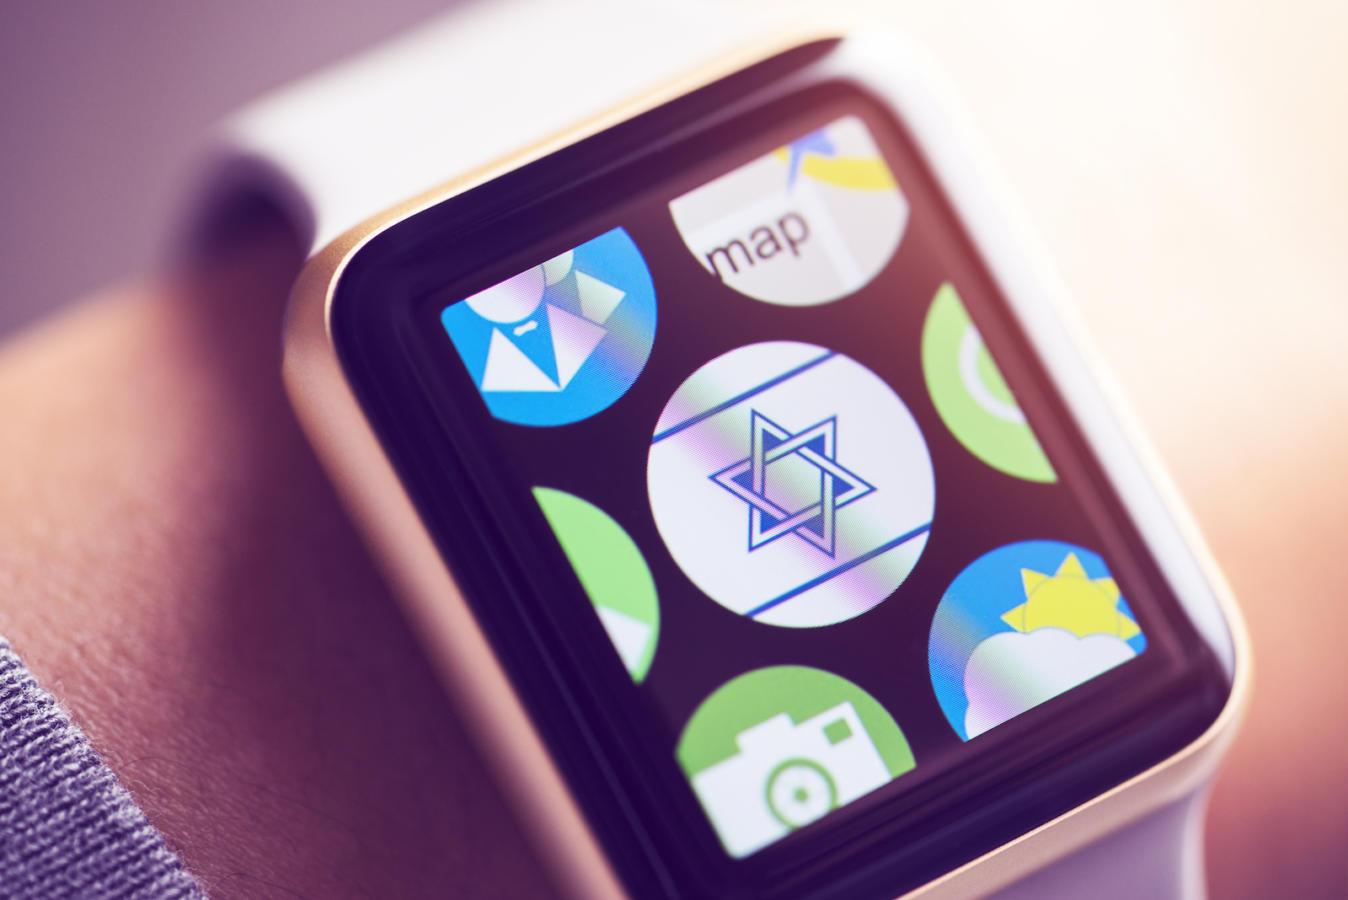 Jewish app icon on smart watch screen.